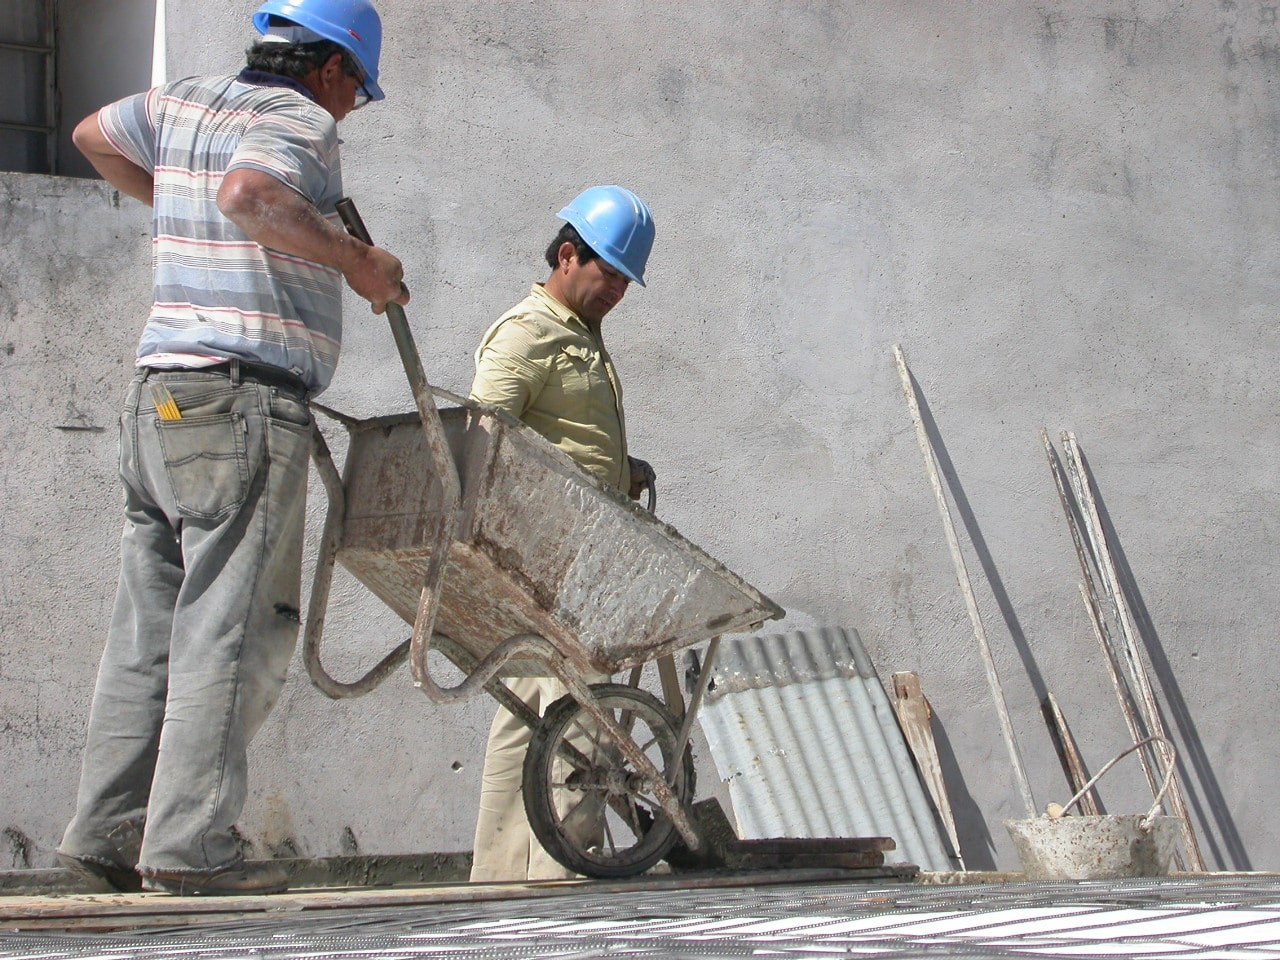 Construction Materials with Asbestos